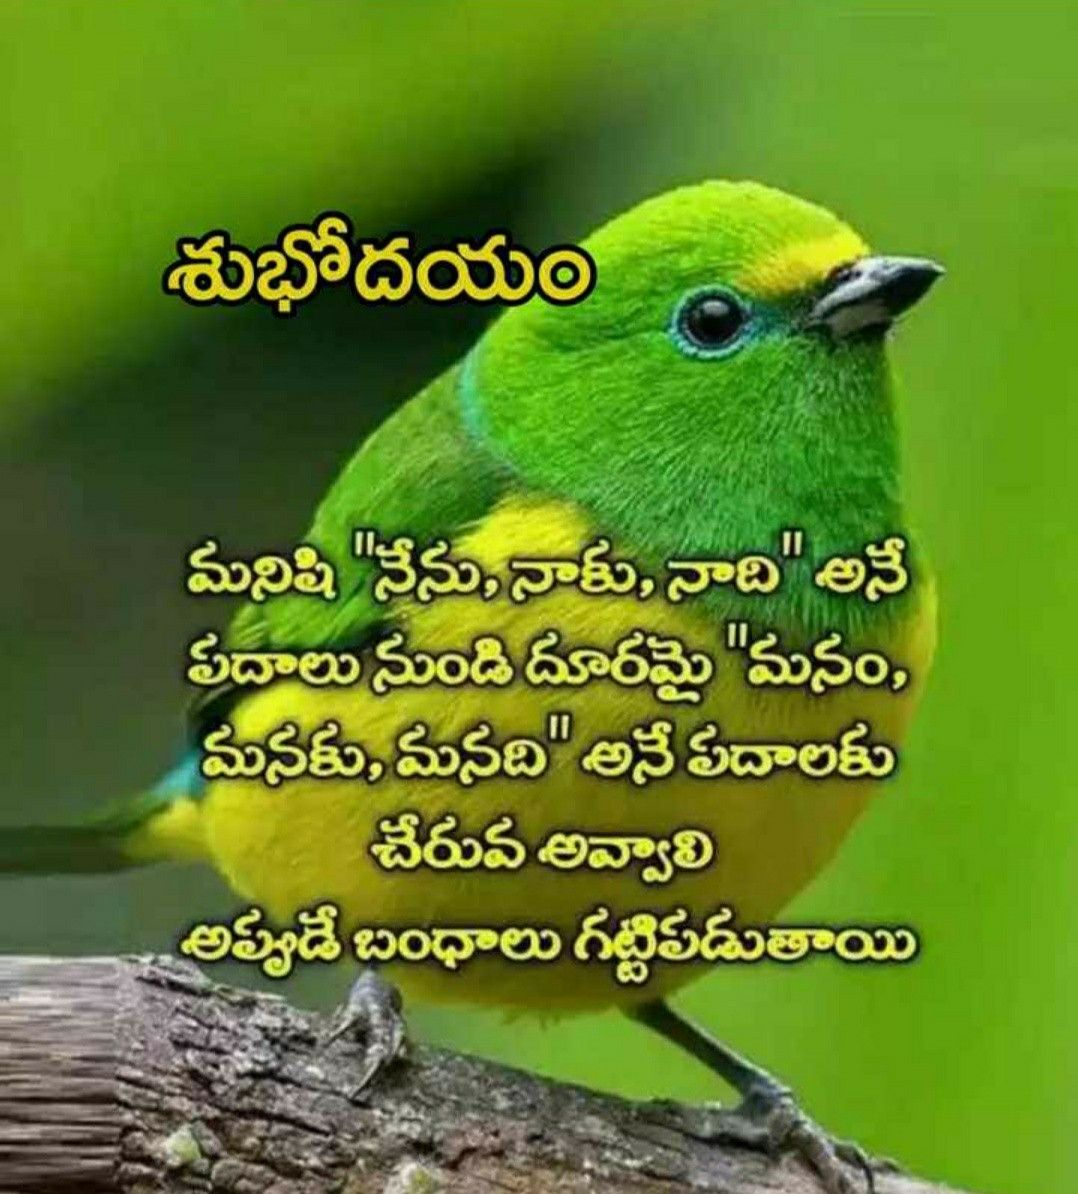 Pin by JONNAGADLA NAGA RATNA on శుభోదయం Good morning